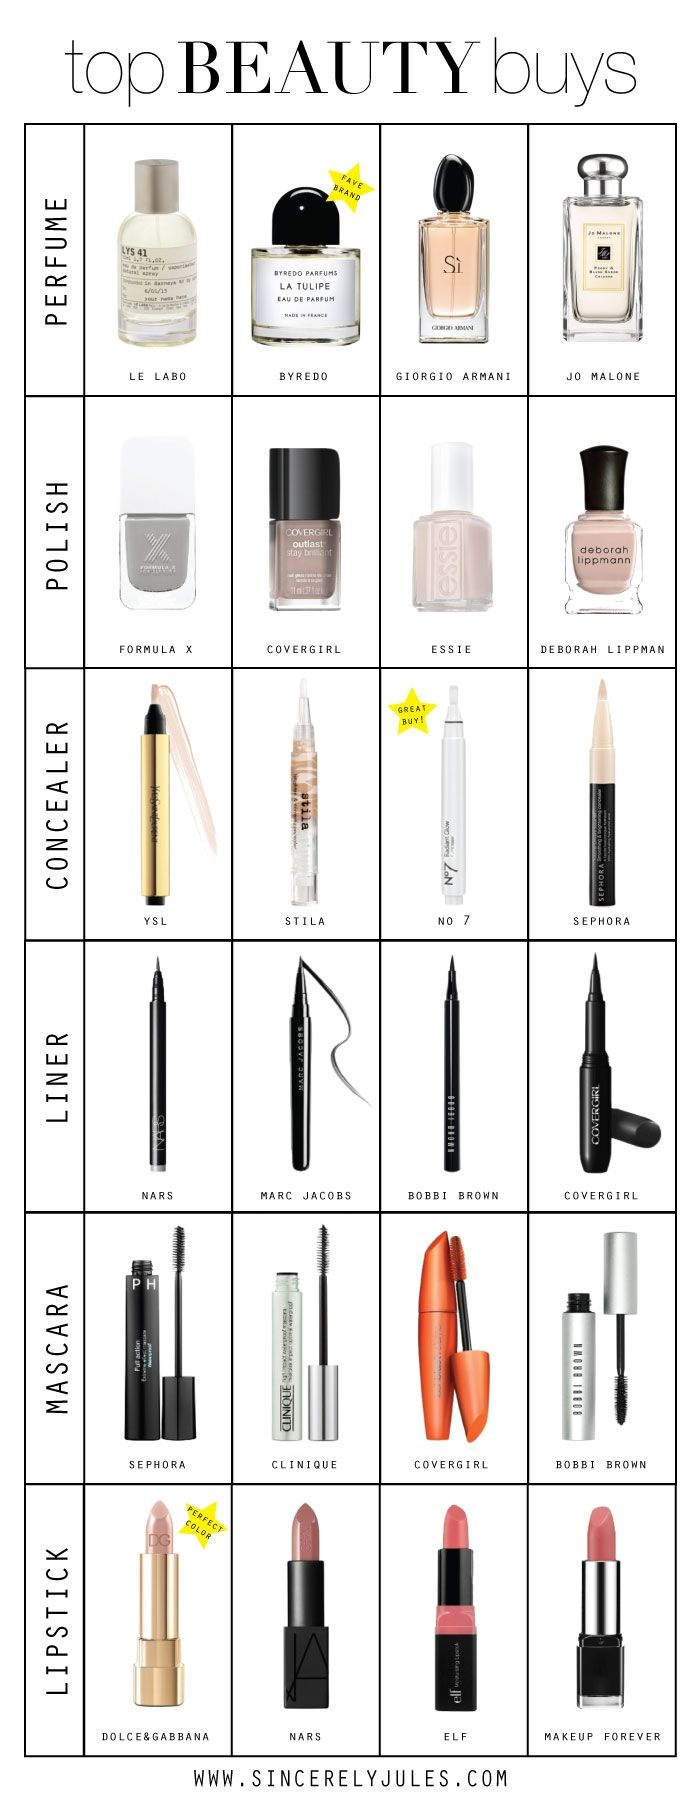 Top Beauty Buys